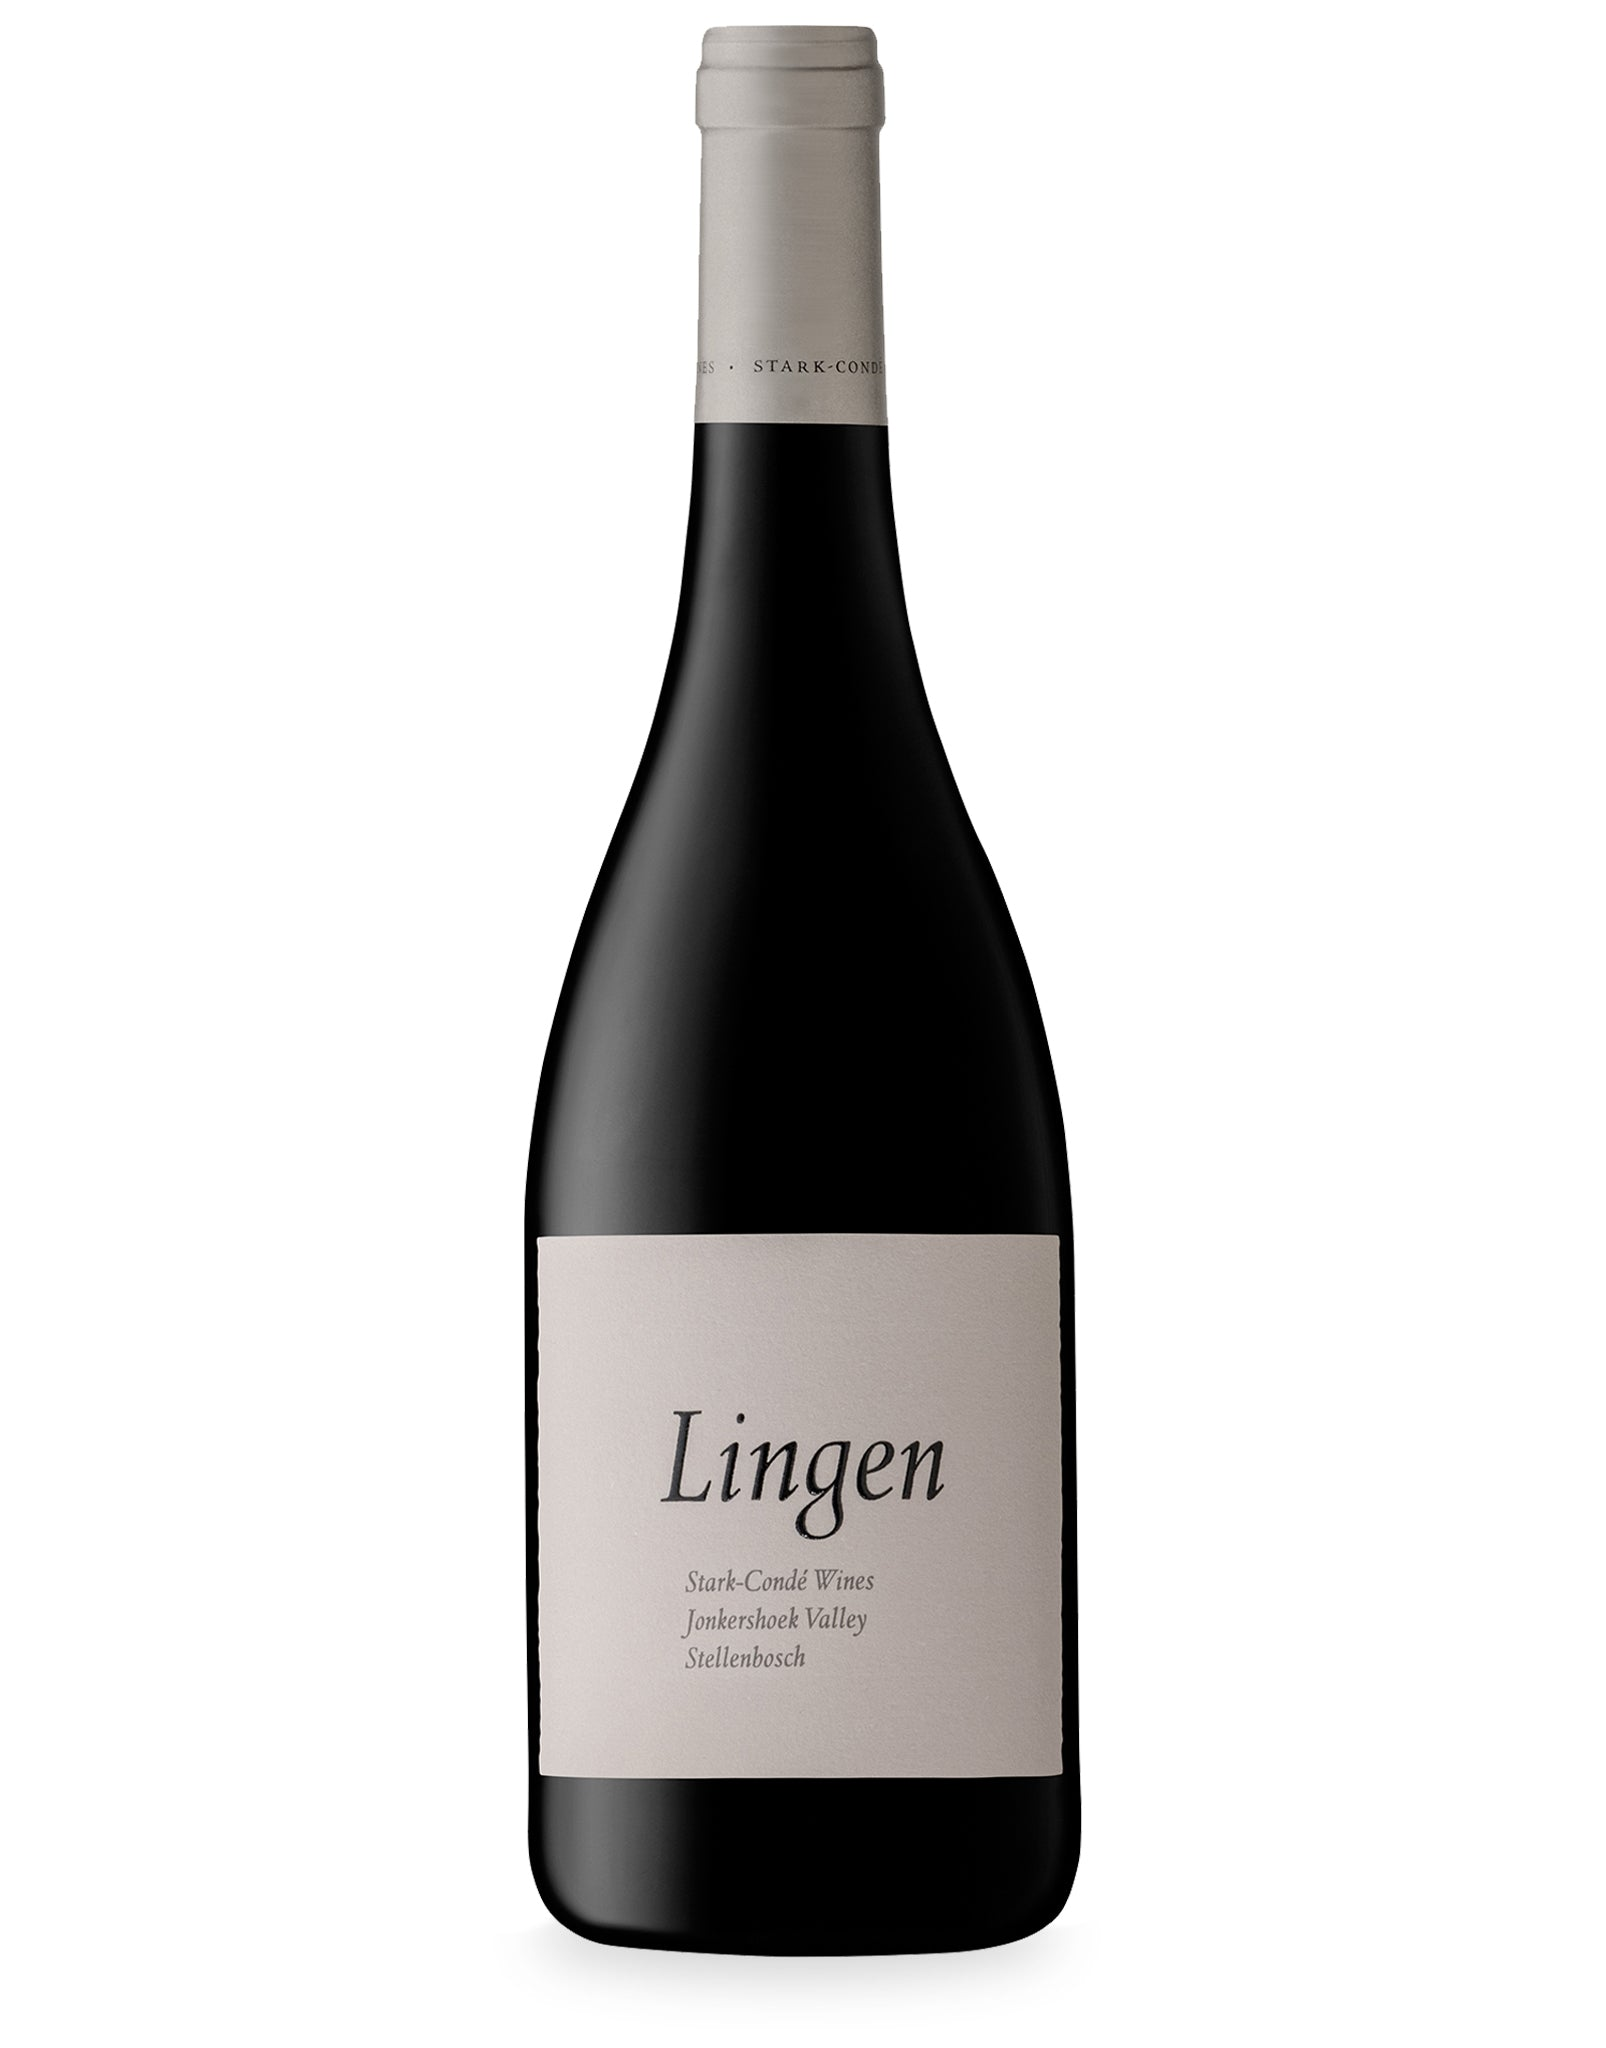 Lingen Red Blend, Non-vintage bottleshot